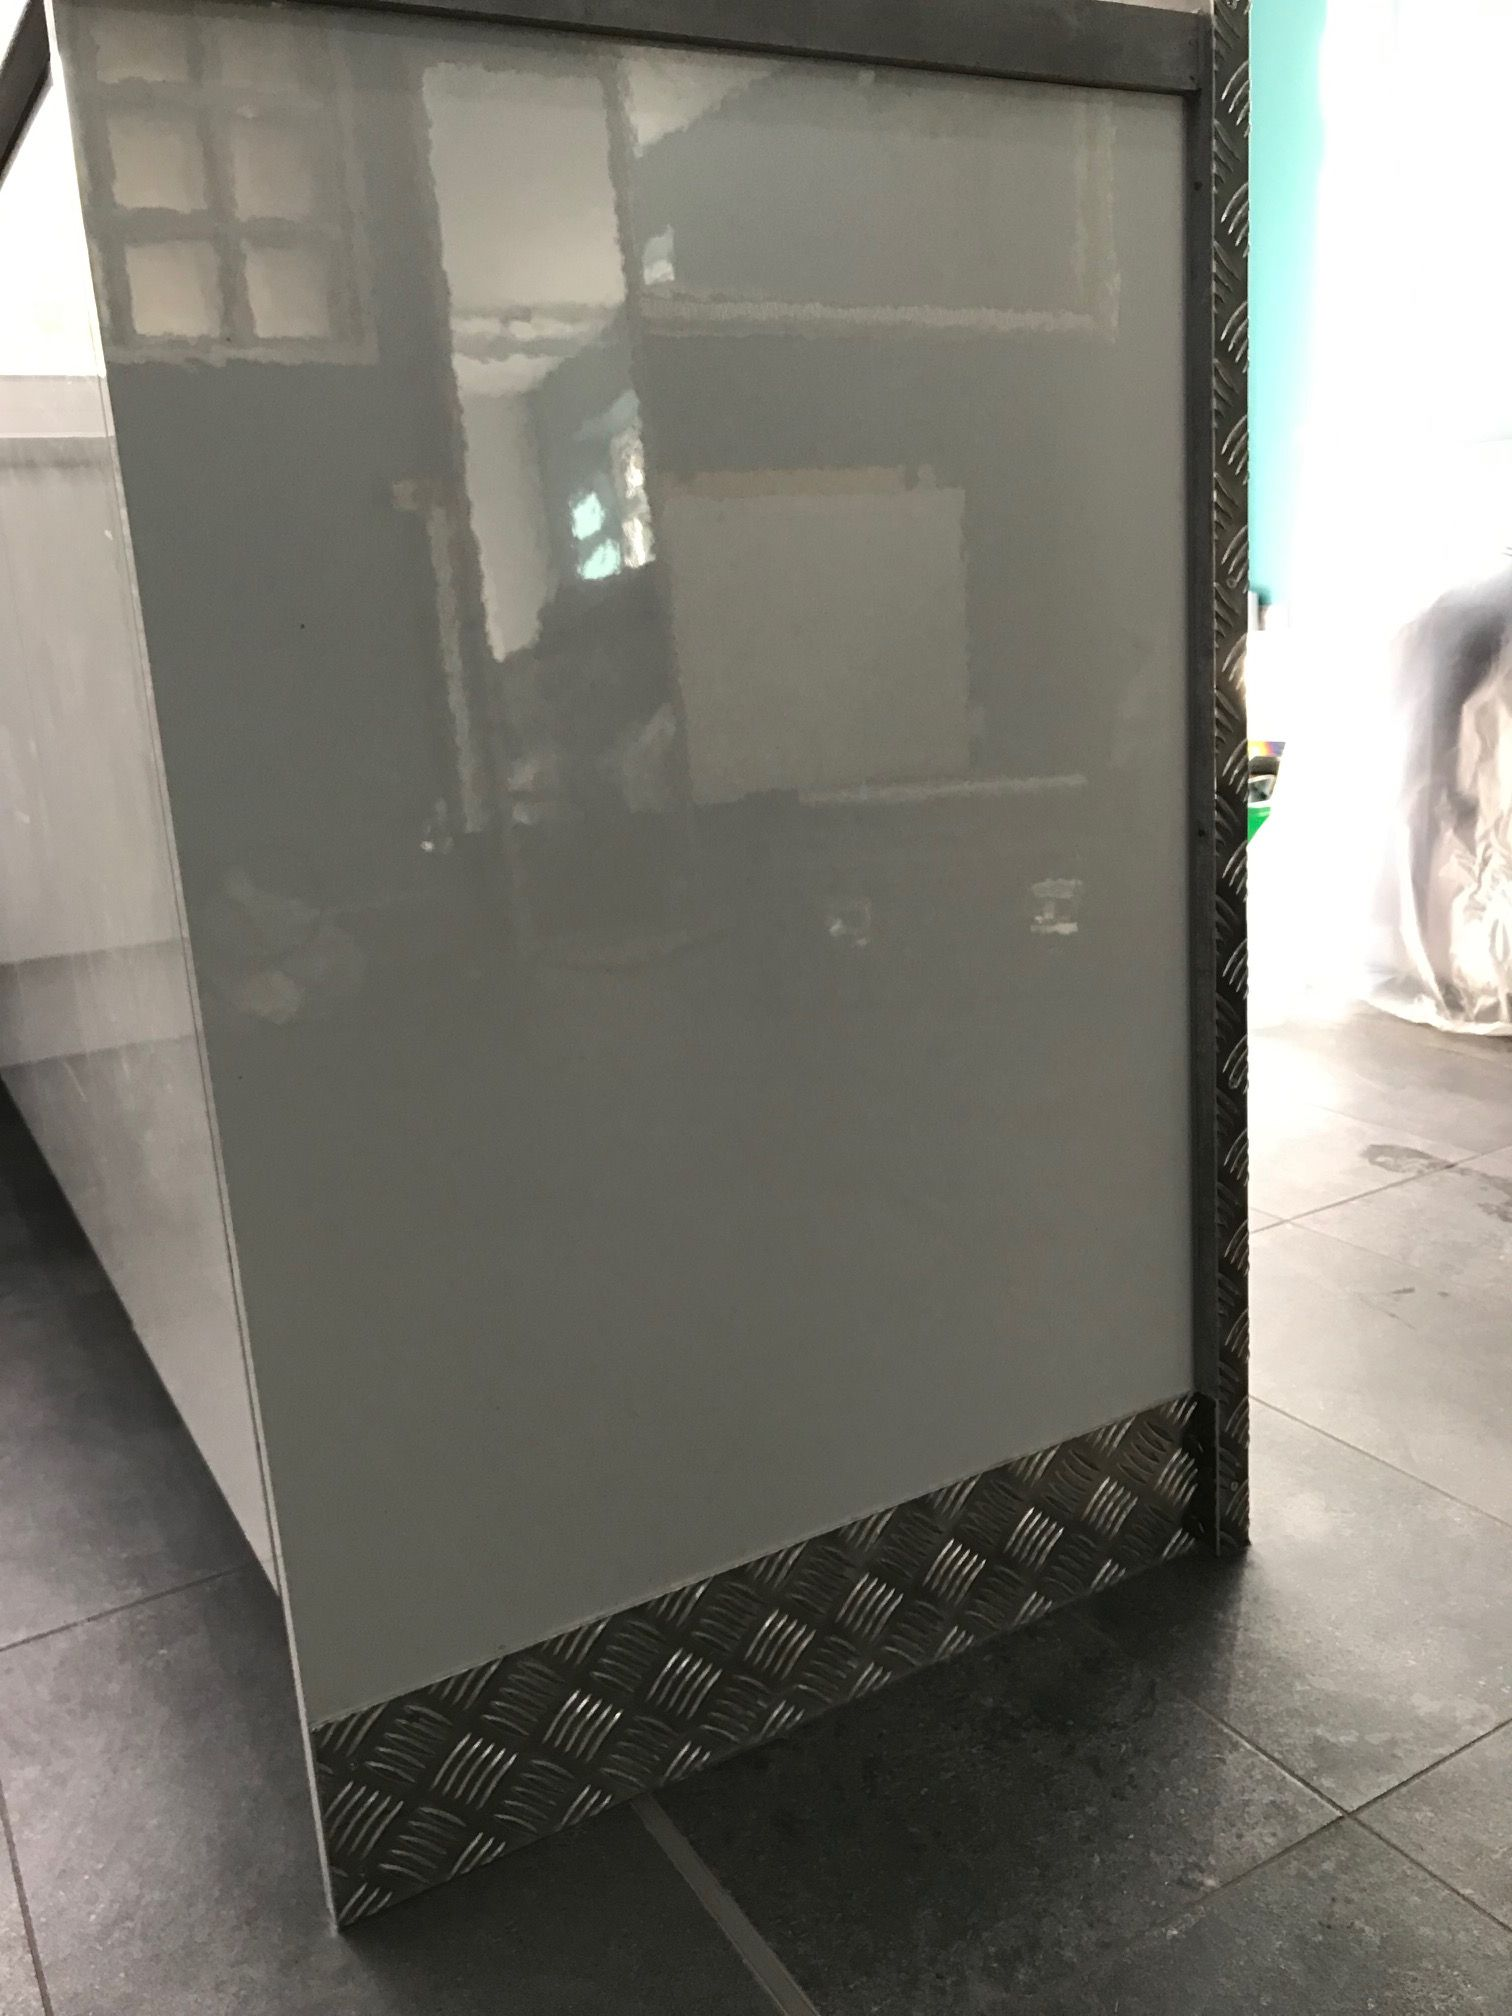 Buy Checker Plate Corner Guards On Our Website Www Chequerplatedirect Co Uk Checkerplate Tre Corner Guards Home Diy Checkered